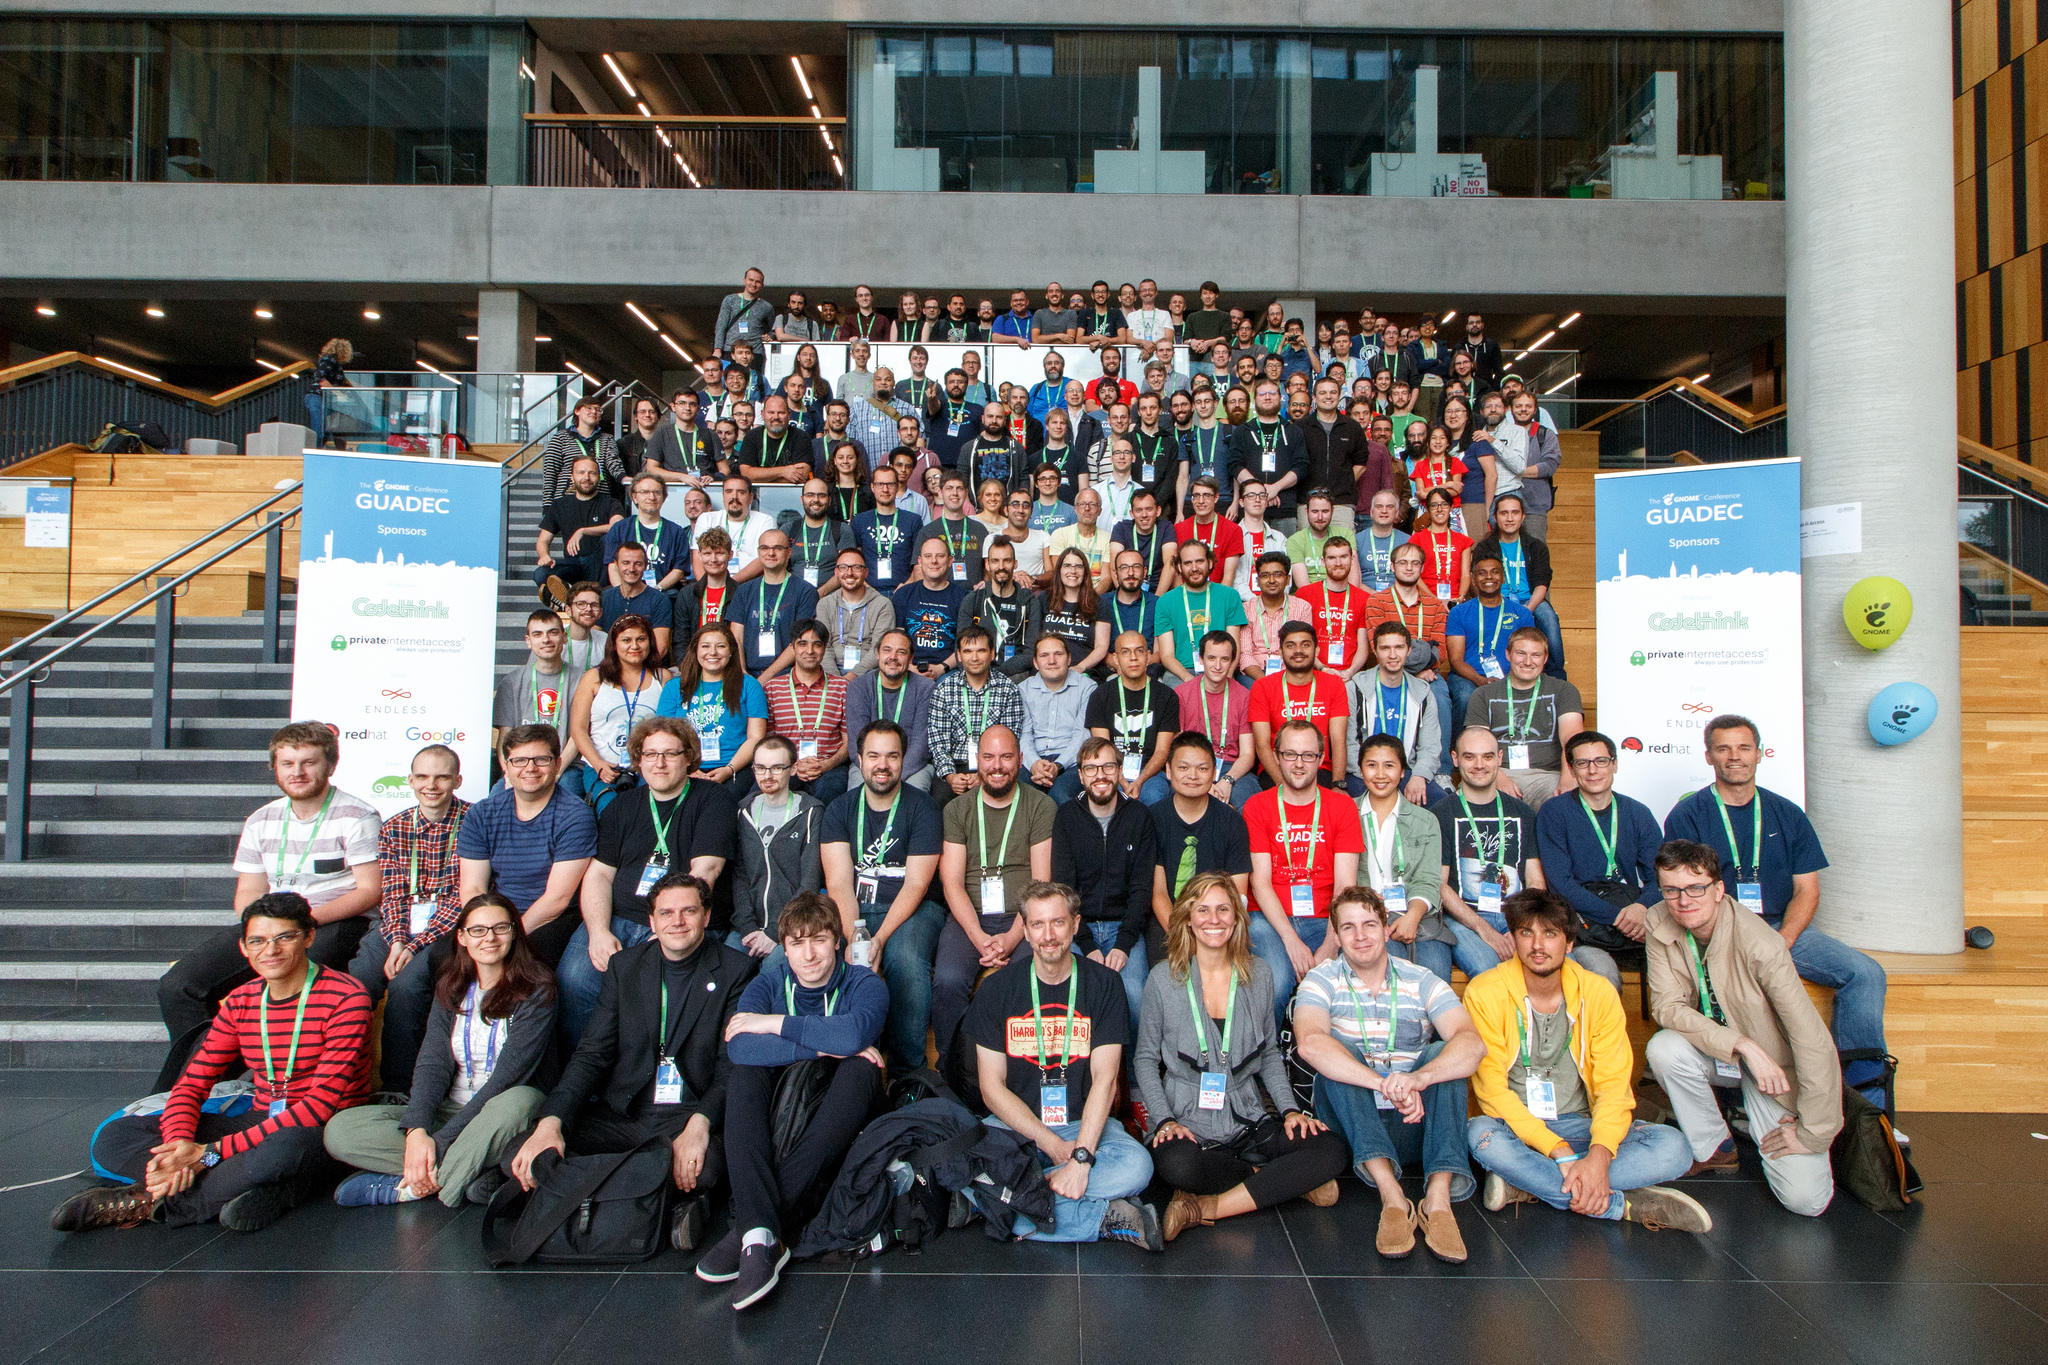 GUADEC 2017 - Group photo